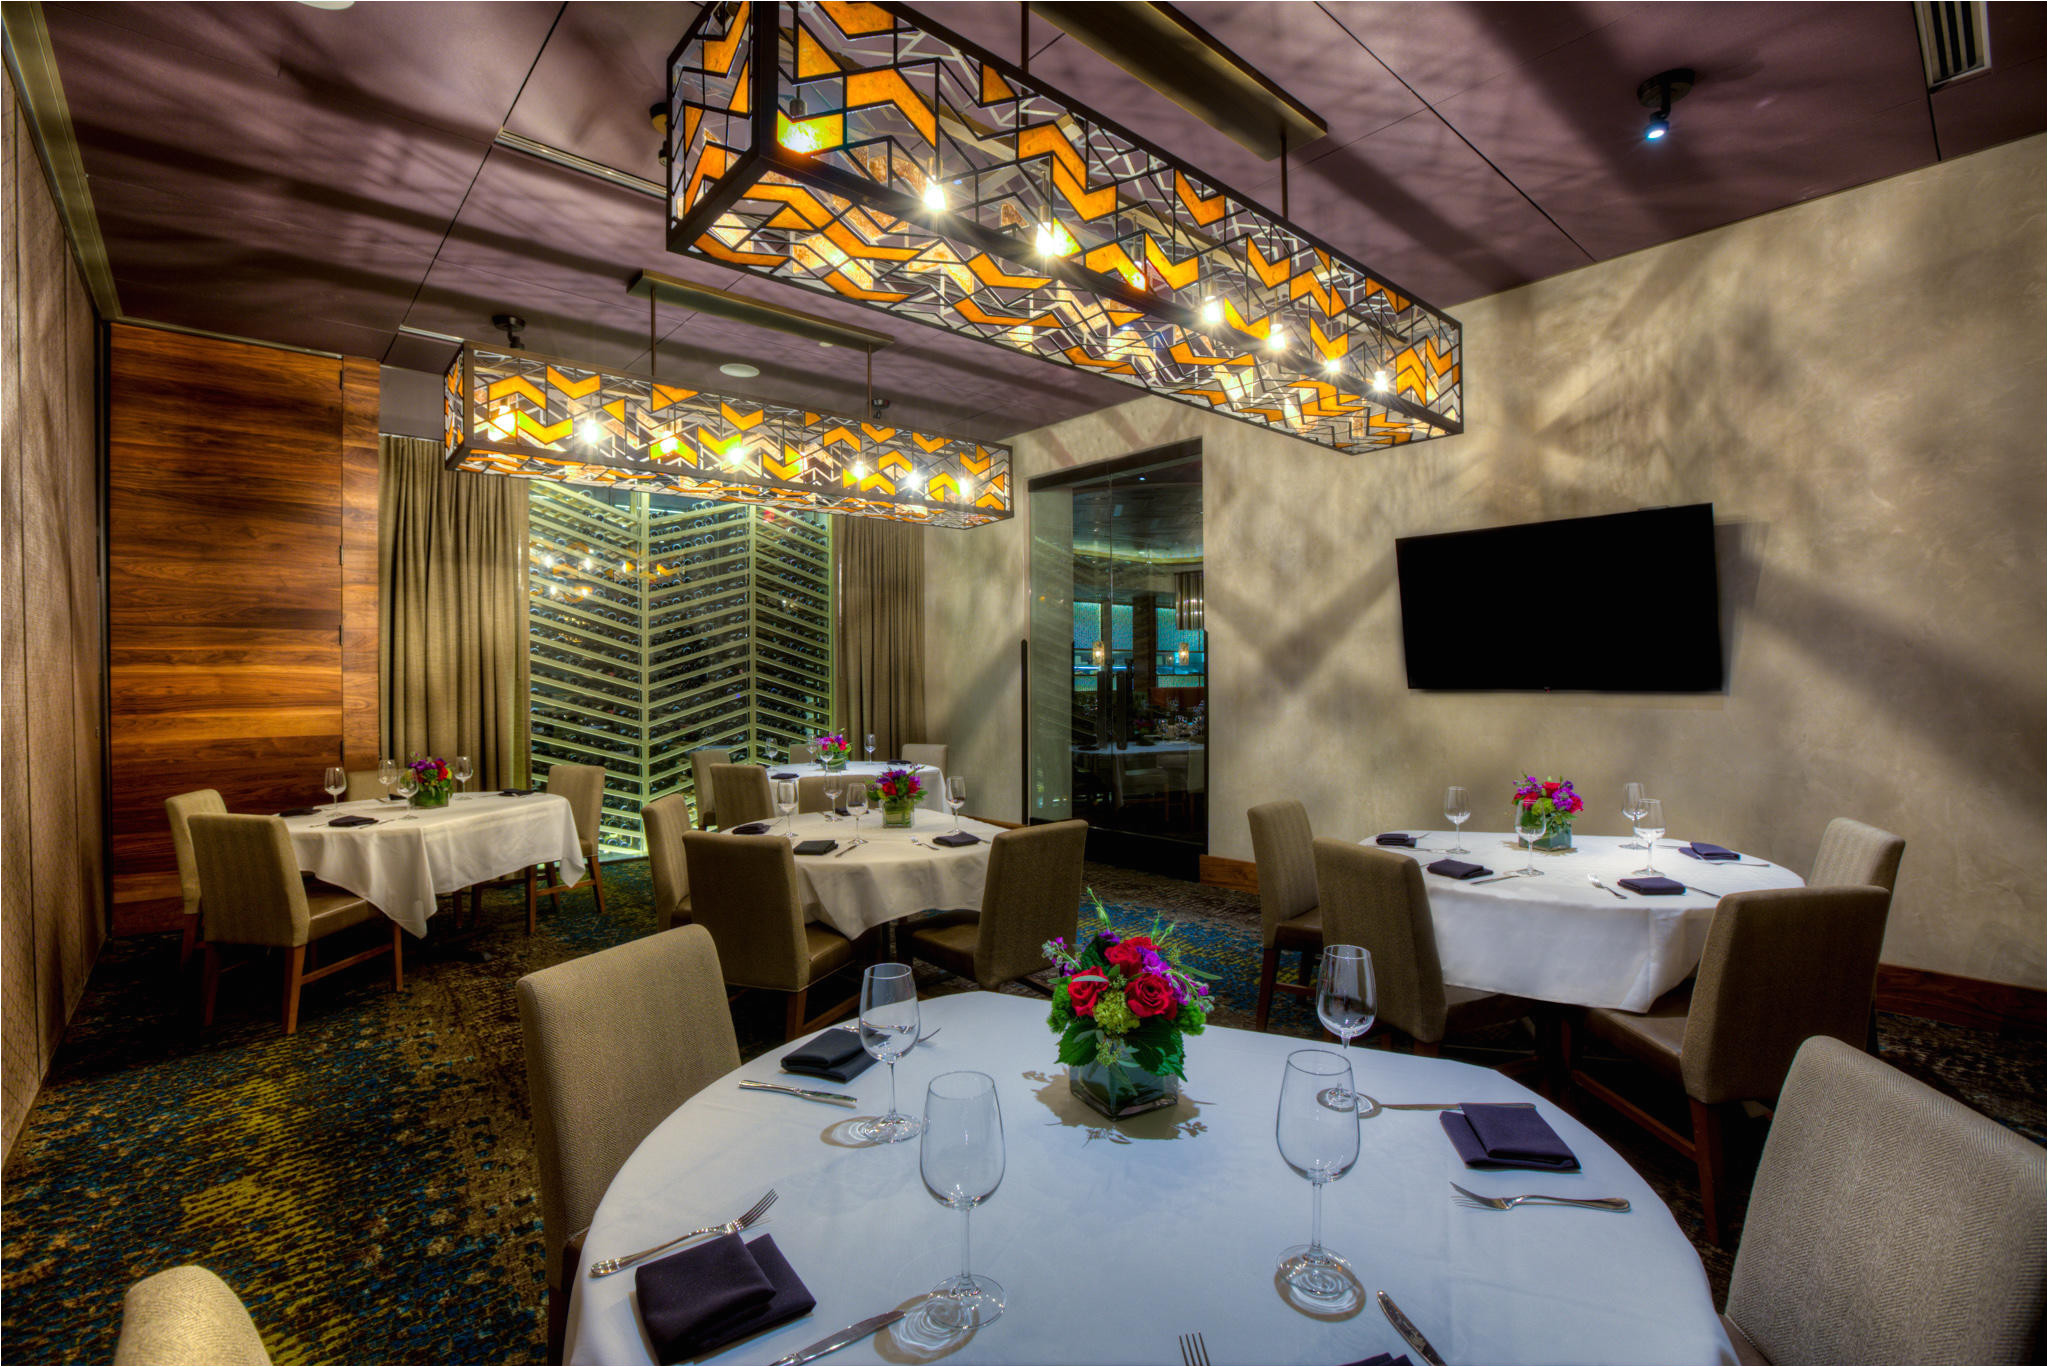 del frisco s double eagle steakhouse orlando oak room half cellar private dining room